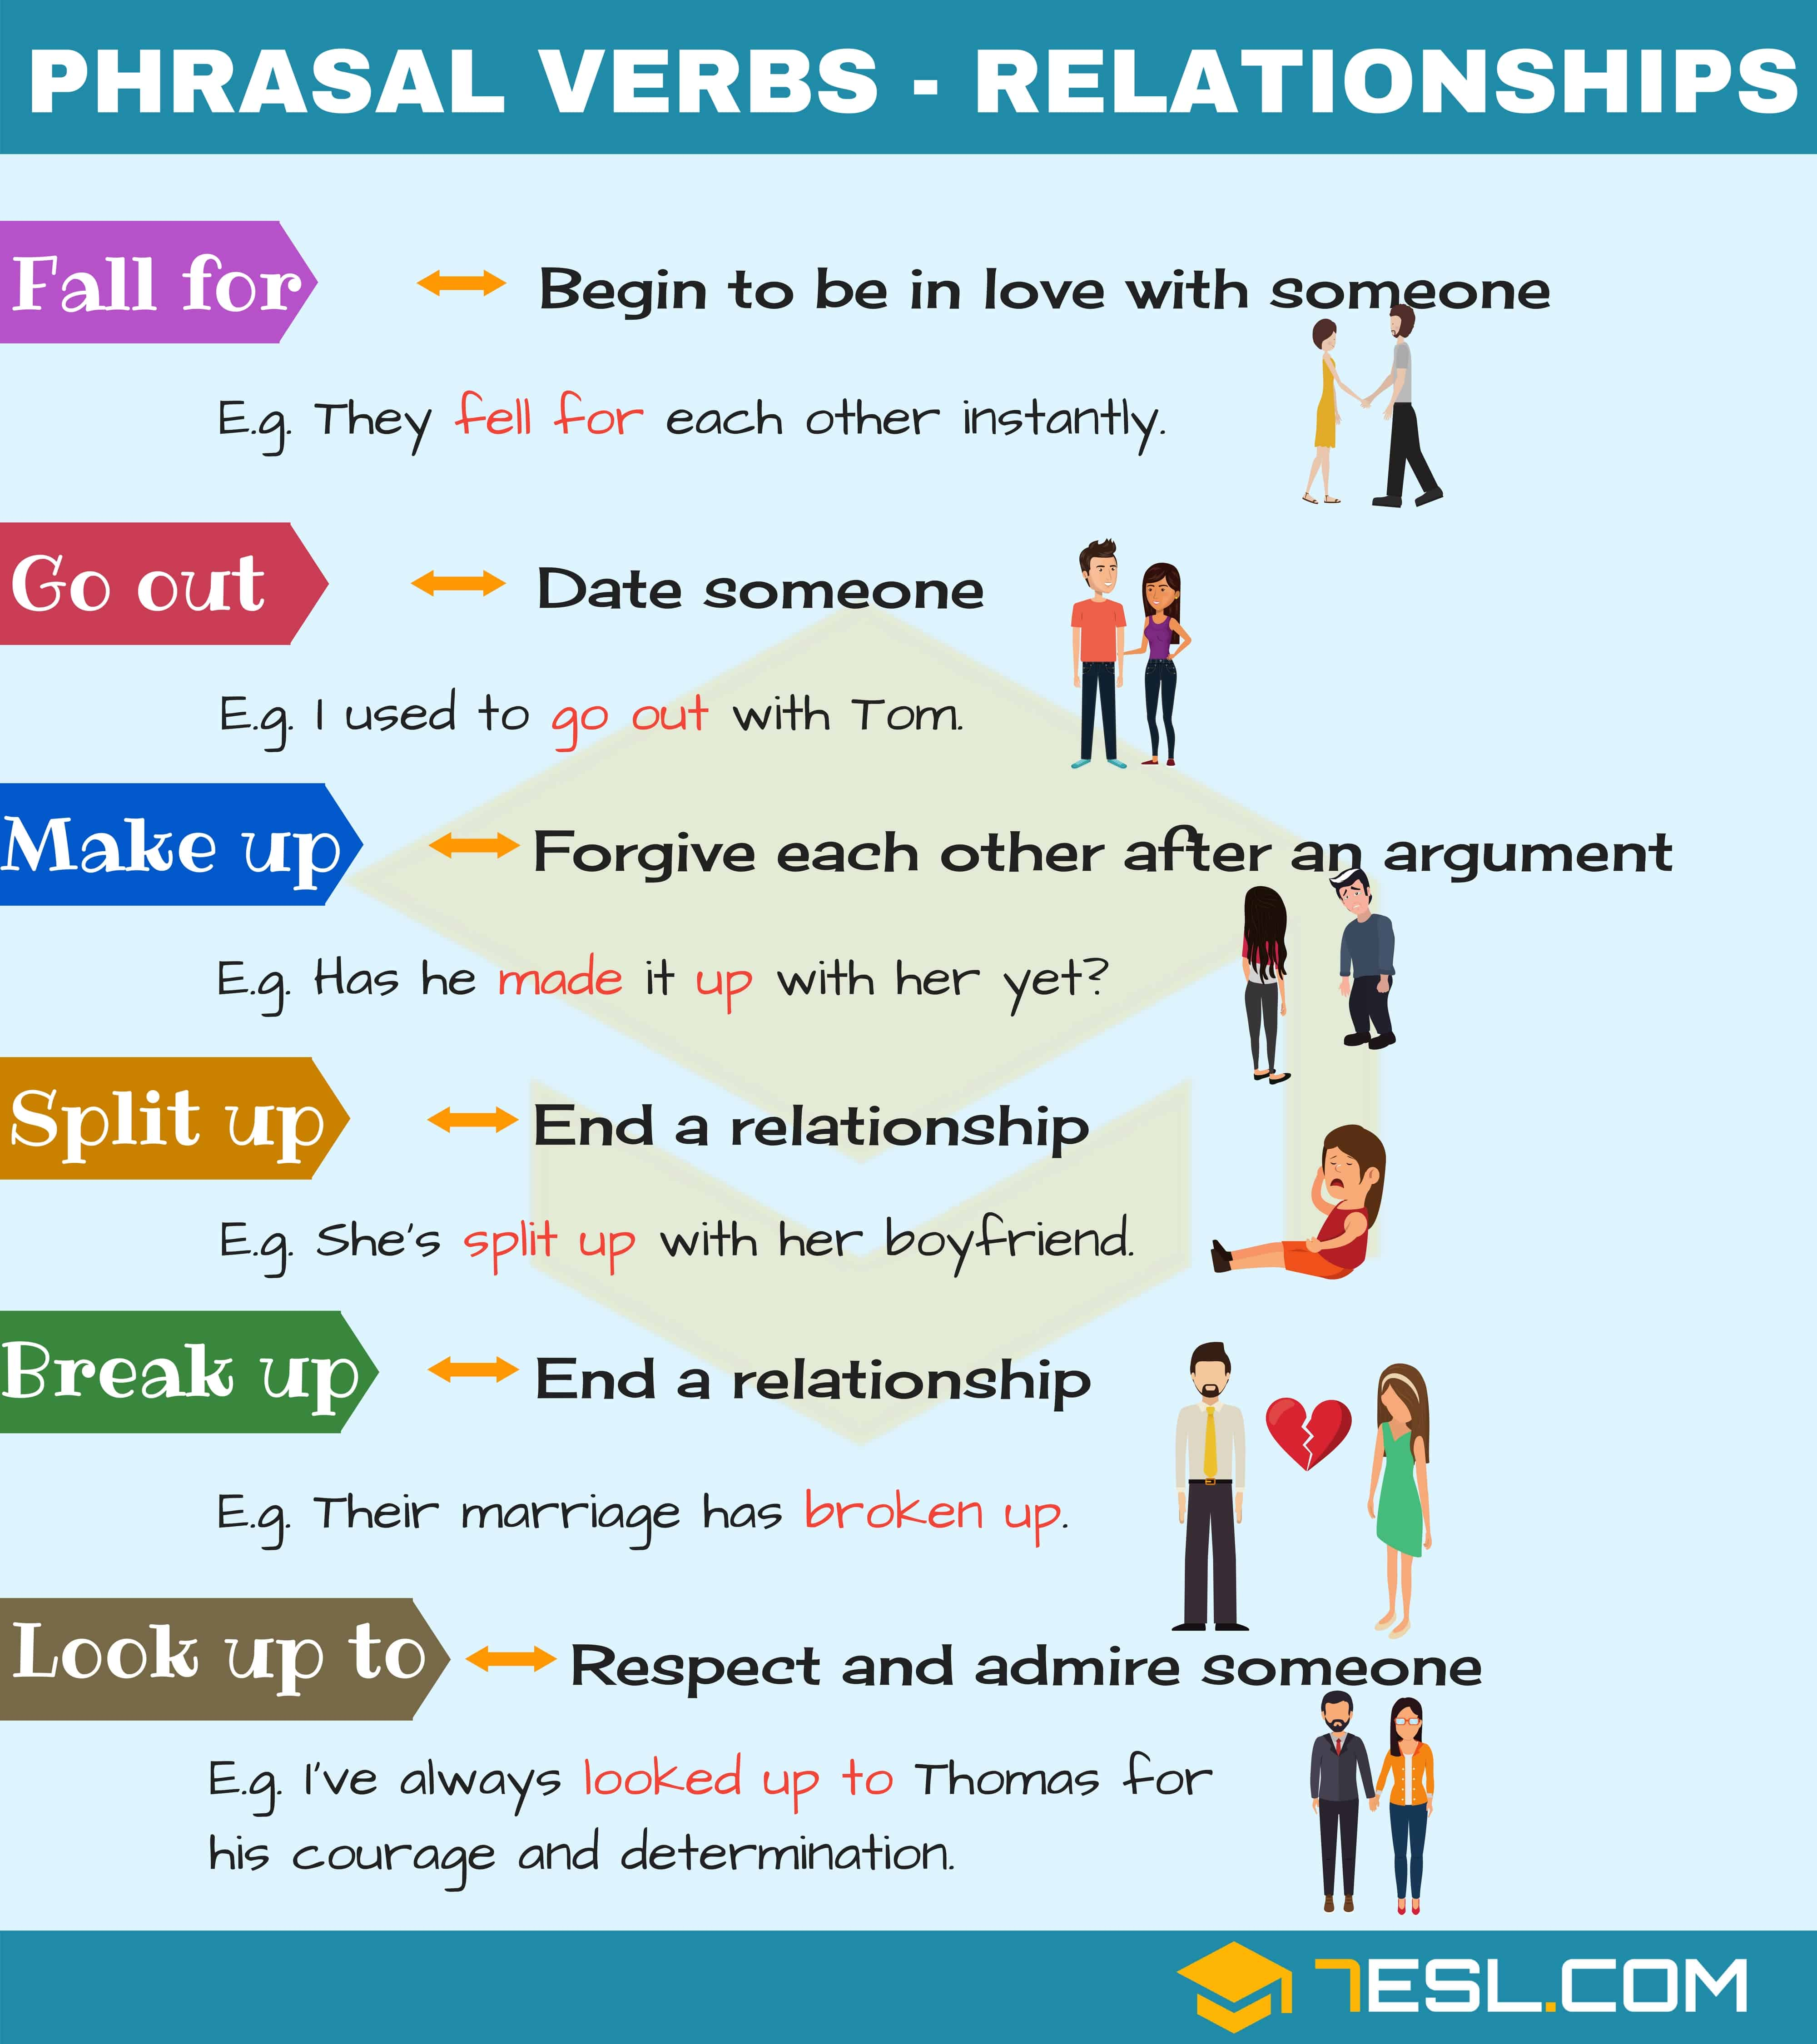 Common Phrasal Verbs In English And Their Meanings